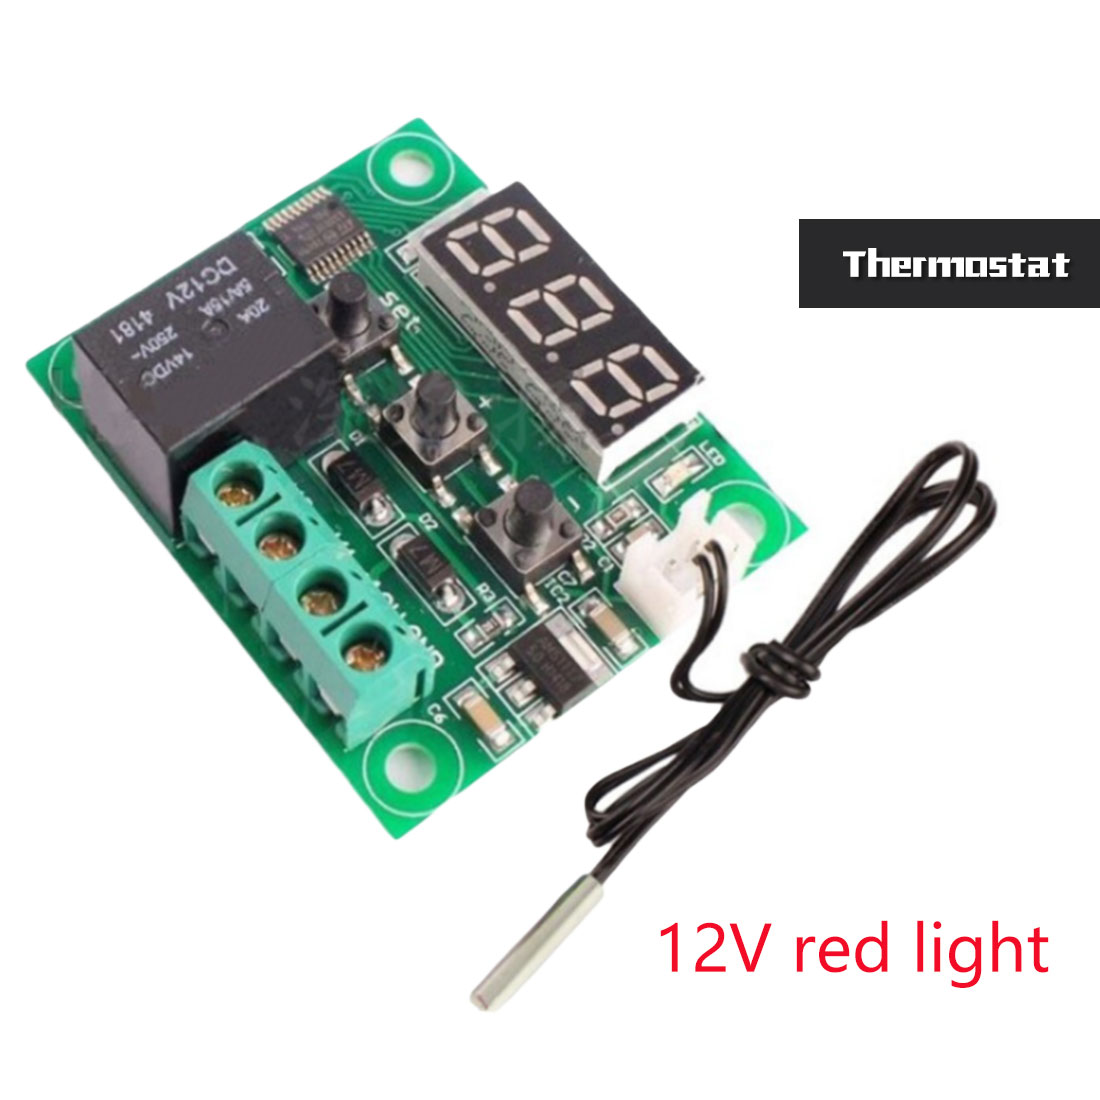 1PCS W1209 DC 12/24V heat cool temp thermostat temperature control switch temperature controller thermometer thermo controller w1209 green led digital thermostat temperature control thermometer thermo controller switch module dc 12v waterproof ntc sensor